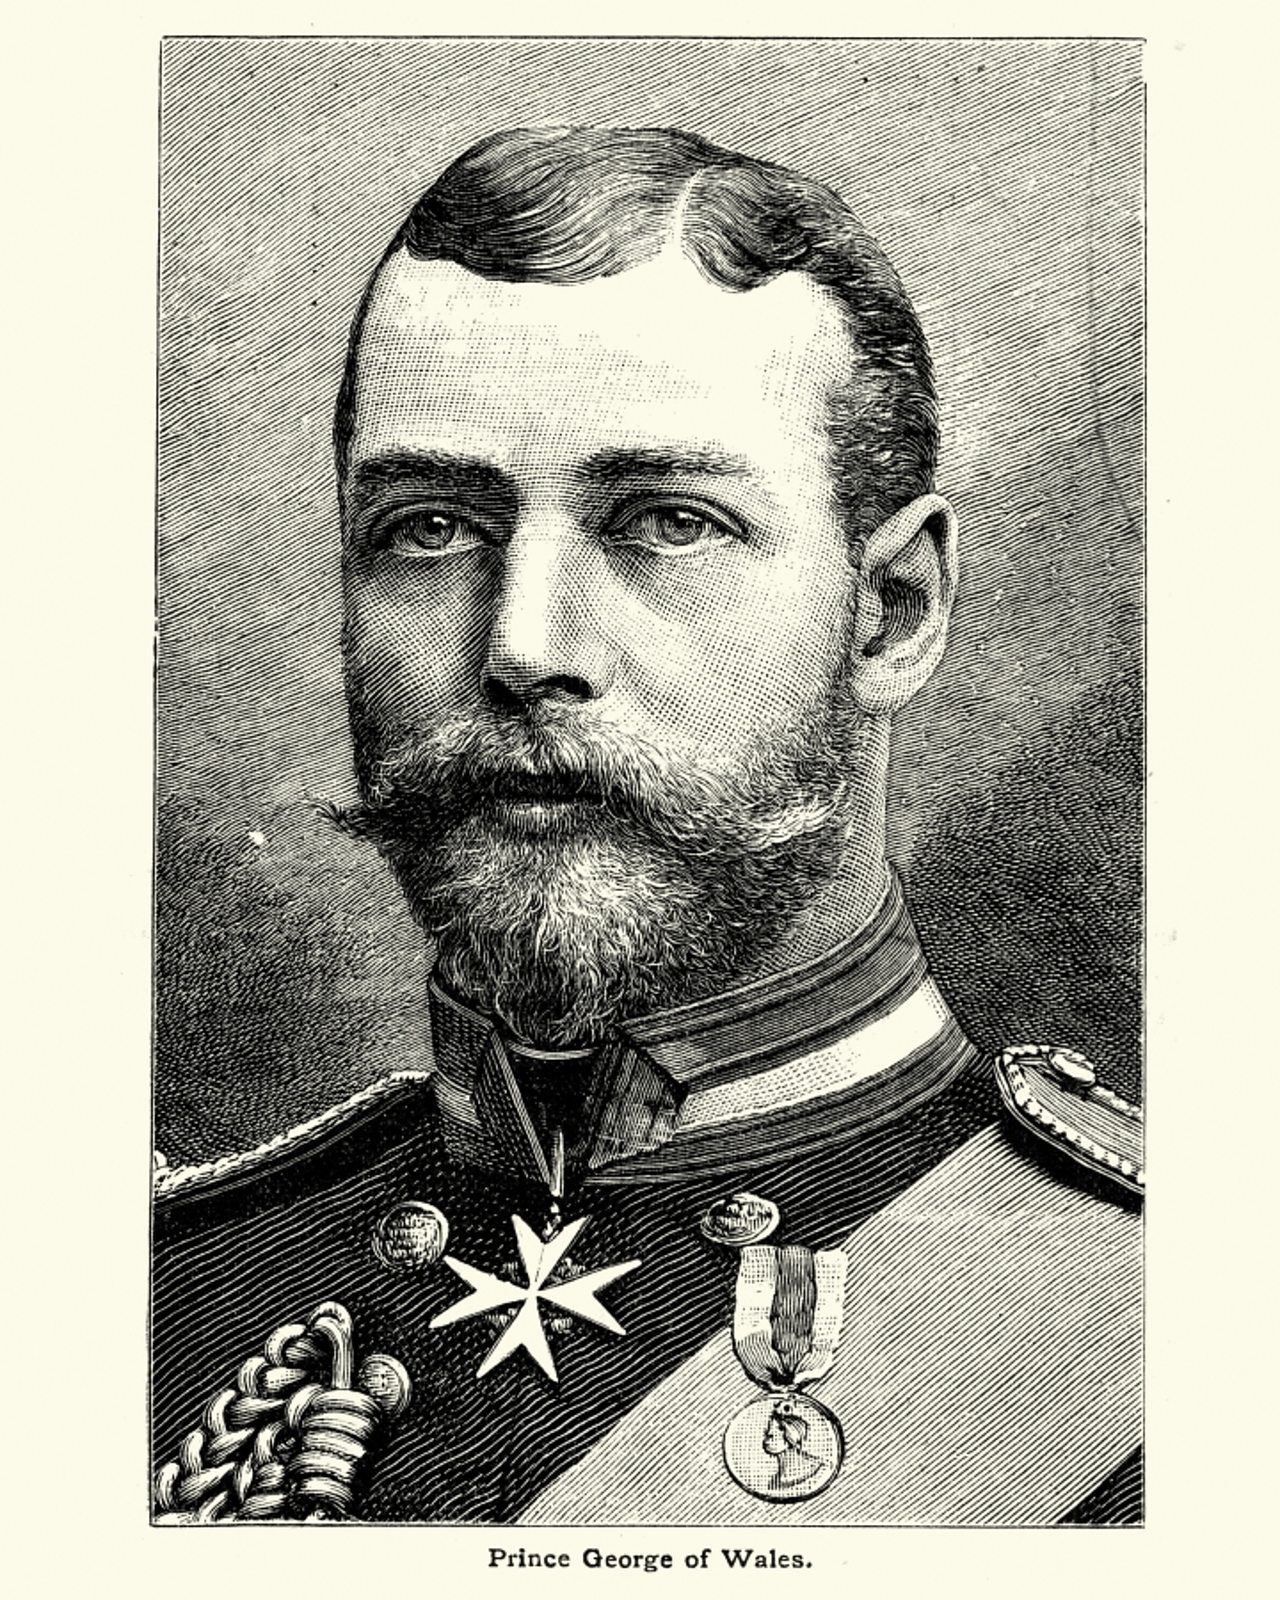 An illustration of King George V before he took to the throne